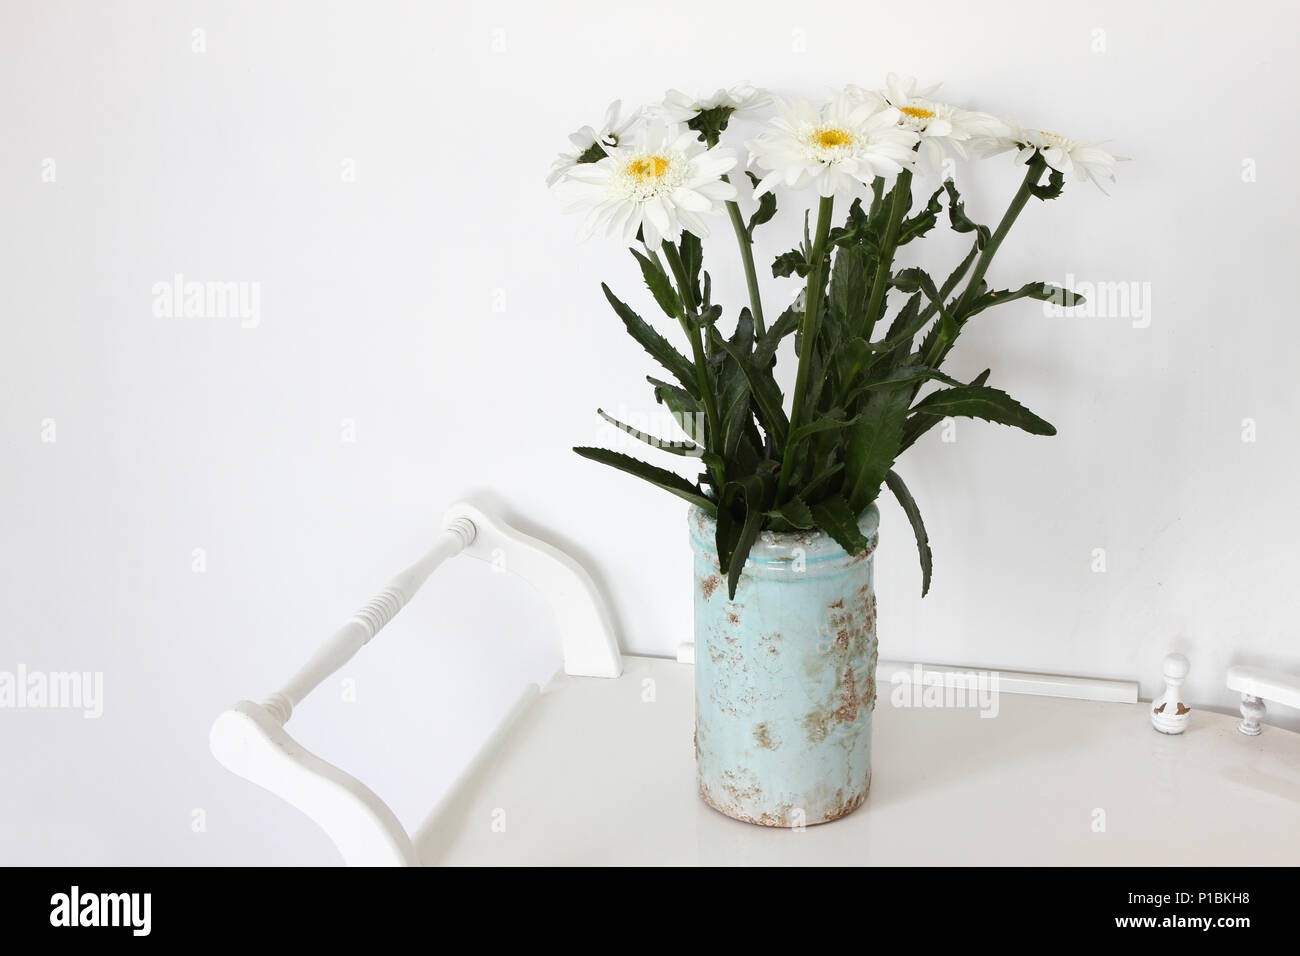 Still life with vase with chamomile flowers daisy flowers bouquet still life with vase with chamomile flowers daisy flowers bouquet in clay vase on white wooden shabby table flower background floral pattern izmirmasajfo